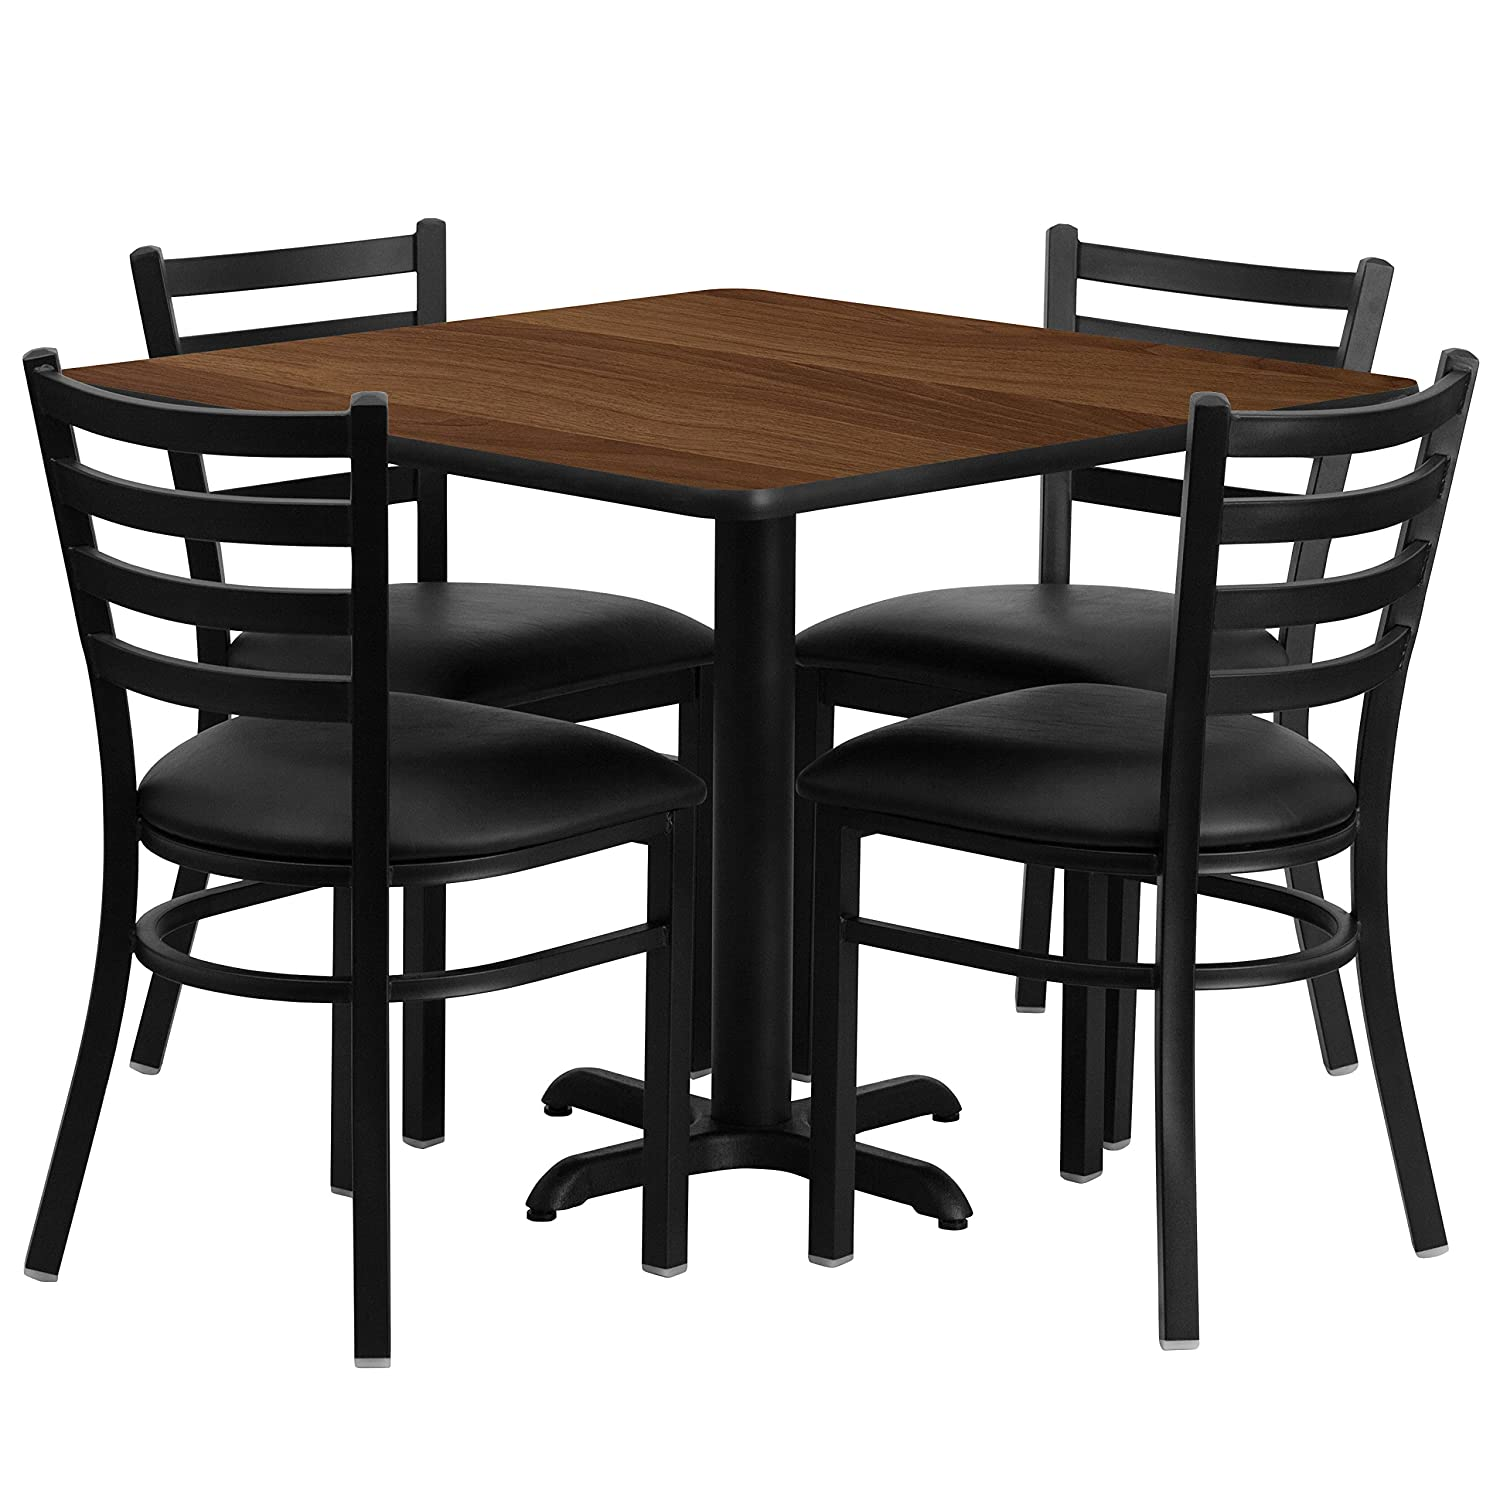 Amazoncom Flash Furniture 36 Square Black Laminate Table Set